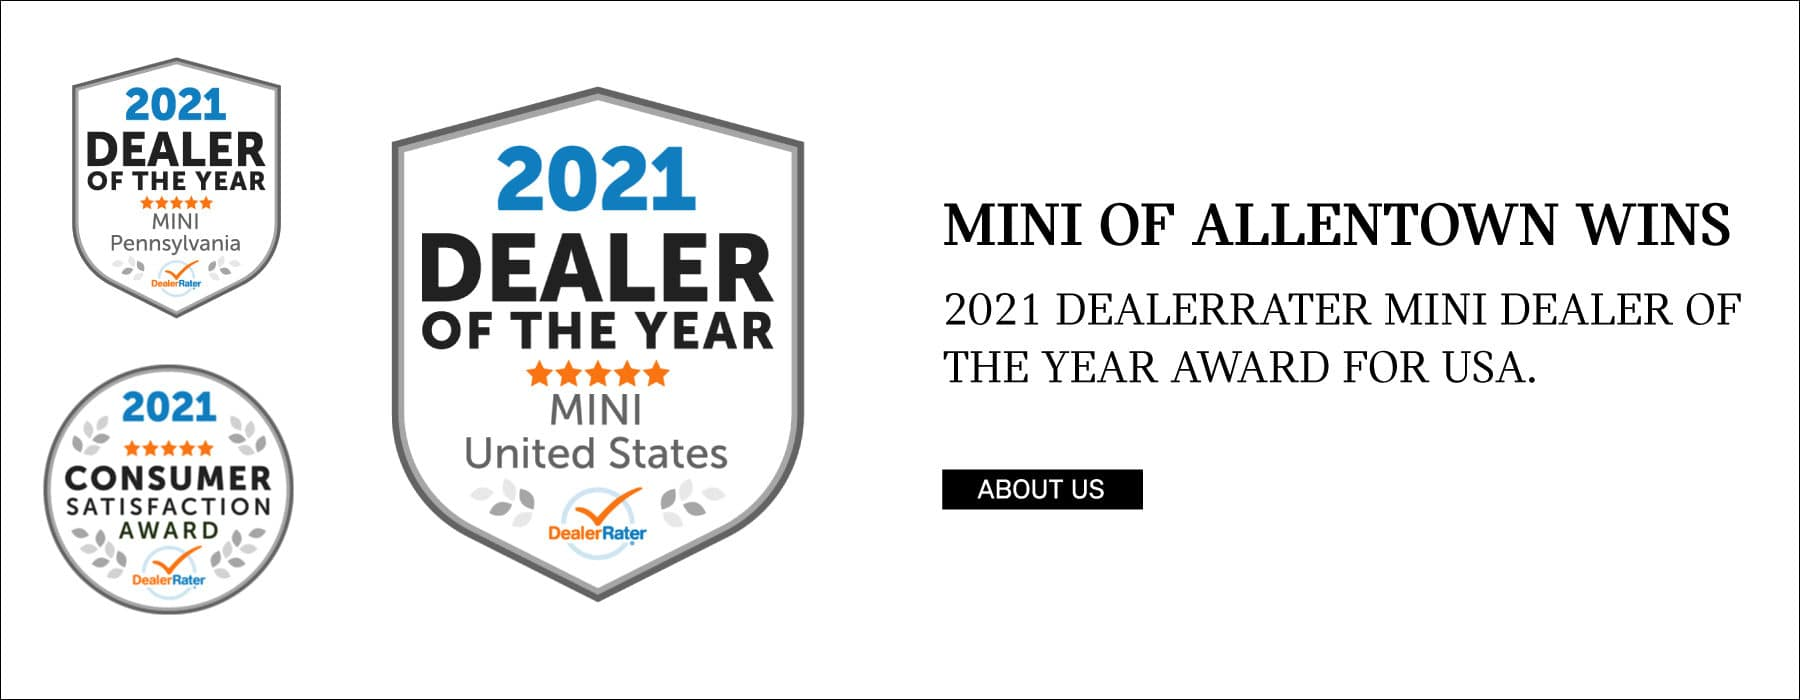 MINI OF ALLENTOWN WINS. 2021 DEALERRATER MINI DEALER OF THE YEAR AWARD FOR USA